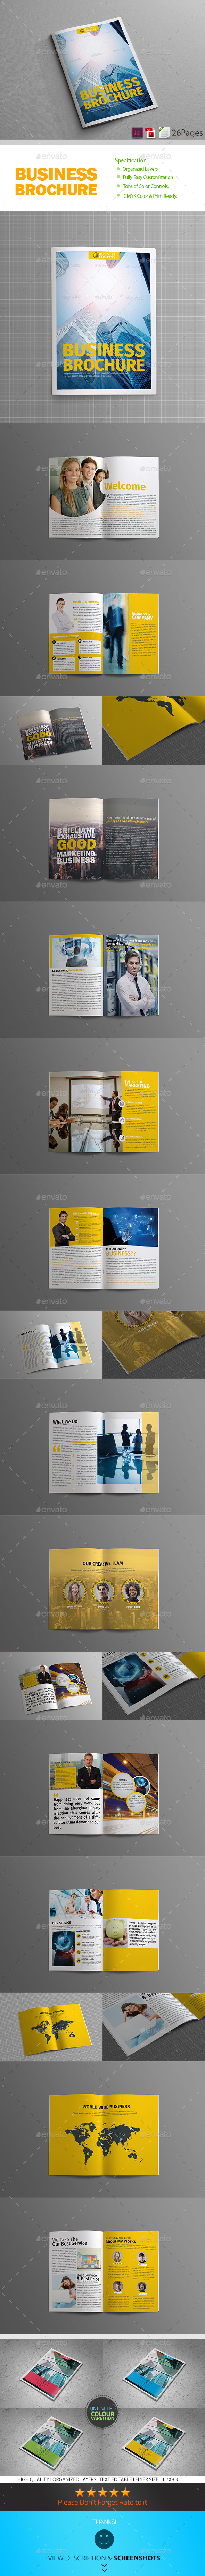 GraphicRiver Business Plan 26 Pages Business Brochure 8970619